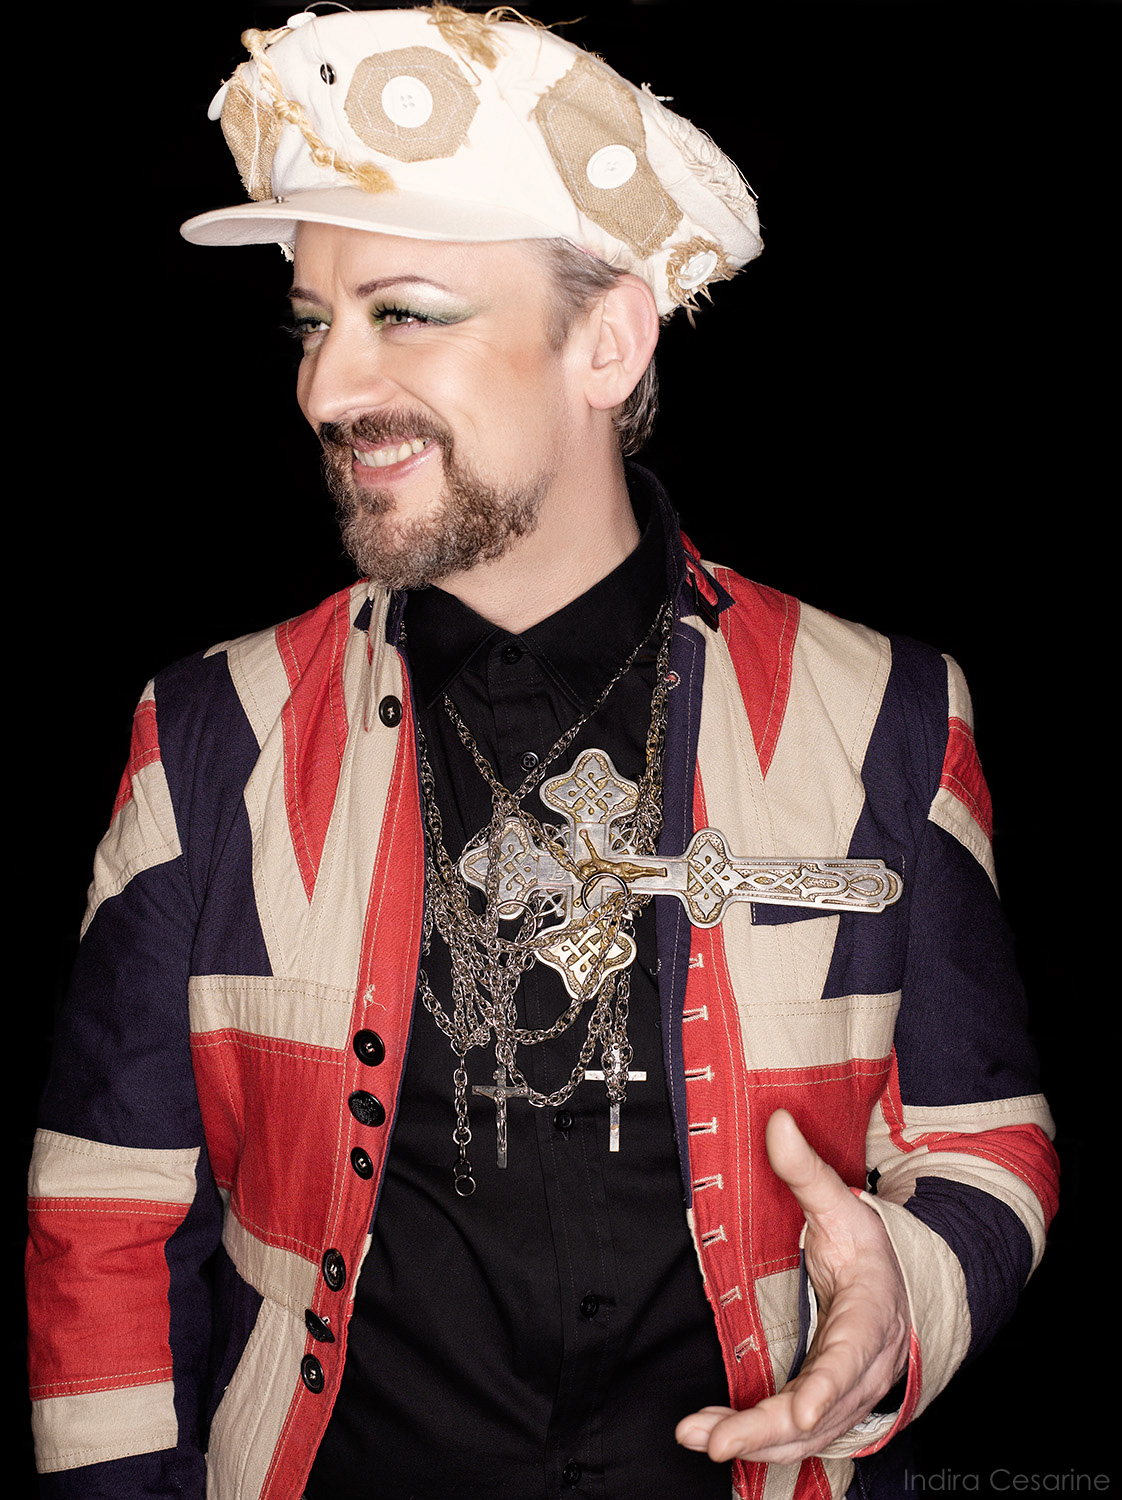 Boy-George-Photography-by-Indira-Cesarine-003.jpg